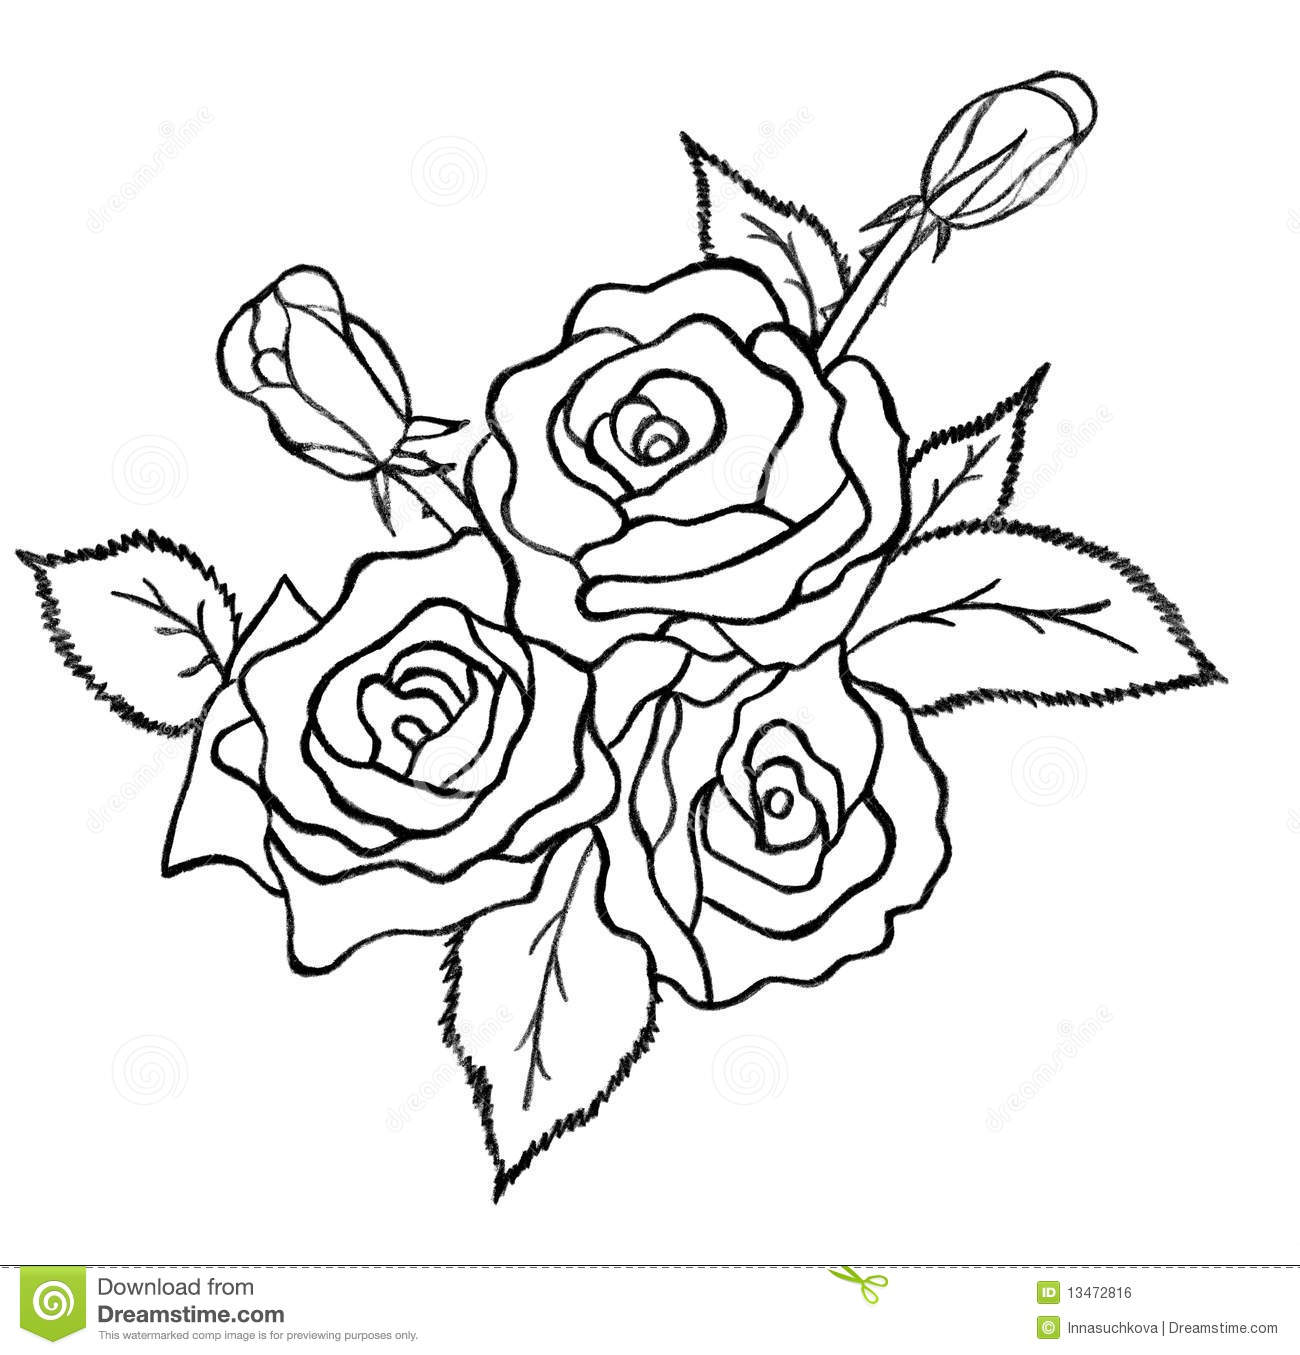 Royalty Free Stock Image Bunch Roses Sketch Image13472816 additionally Draw Female Girl Human Sketch 1298954 also 118712140154789653 also Stock Illustration Cable Bridge Drawing Simple Illustration Tall Image44759573 further Vehicle 20clipart 20vector. on simple car illustrations